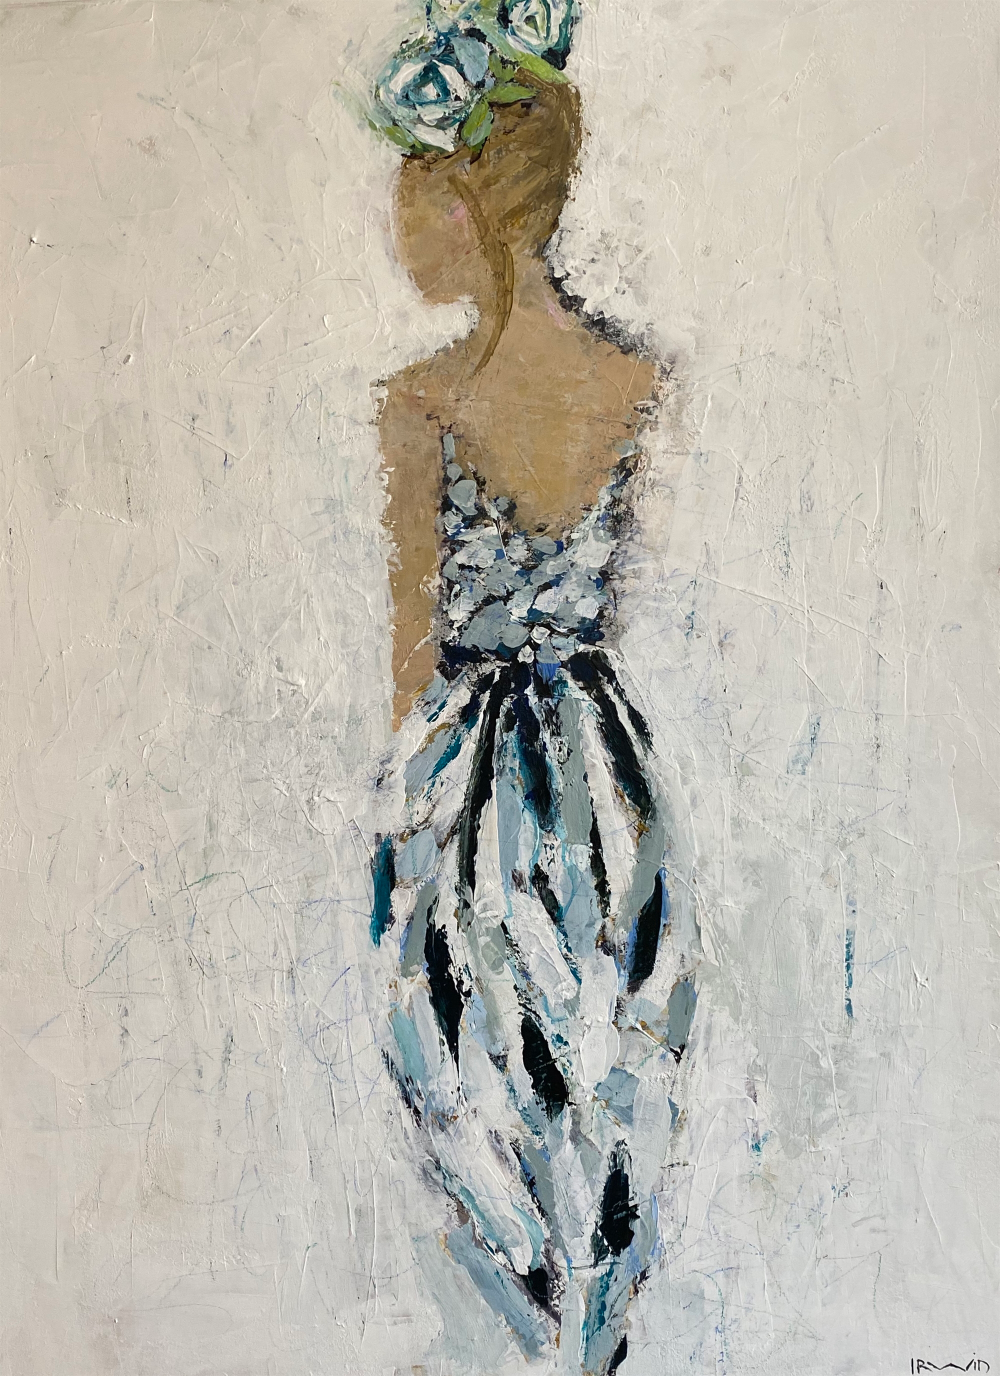 Holly Irwin Dk Gallery Blue Camellias 48x36 Mixed Media On Canvas Www Dkgallery Us M In 2020 Visual Arts Center Art Institute Of Pittsburgh Fine Art Painting